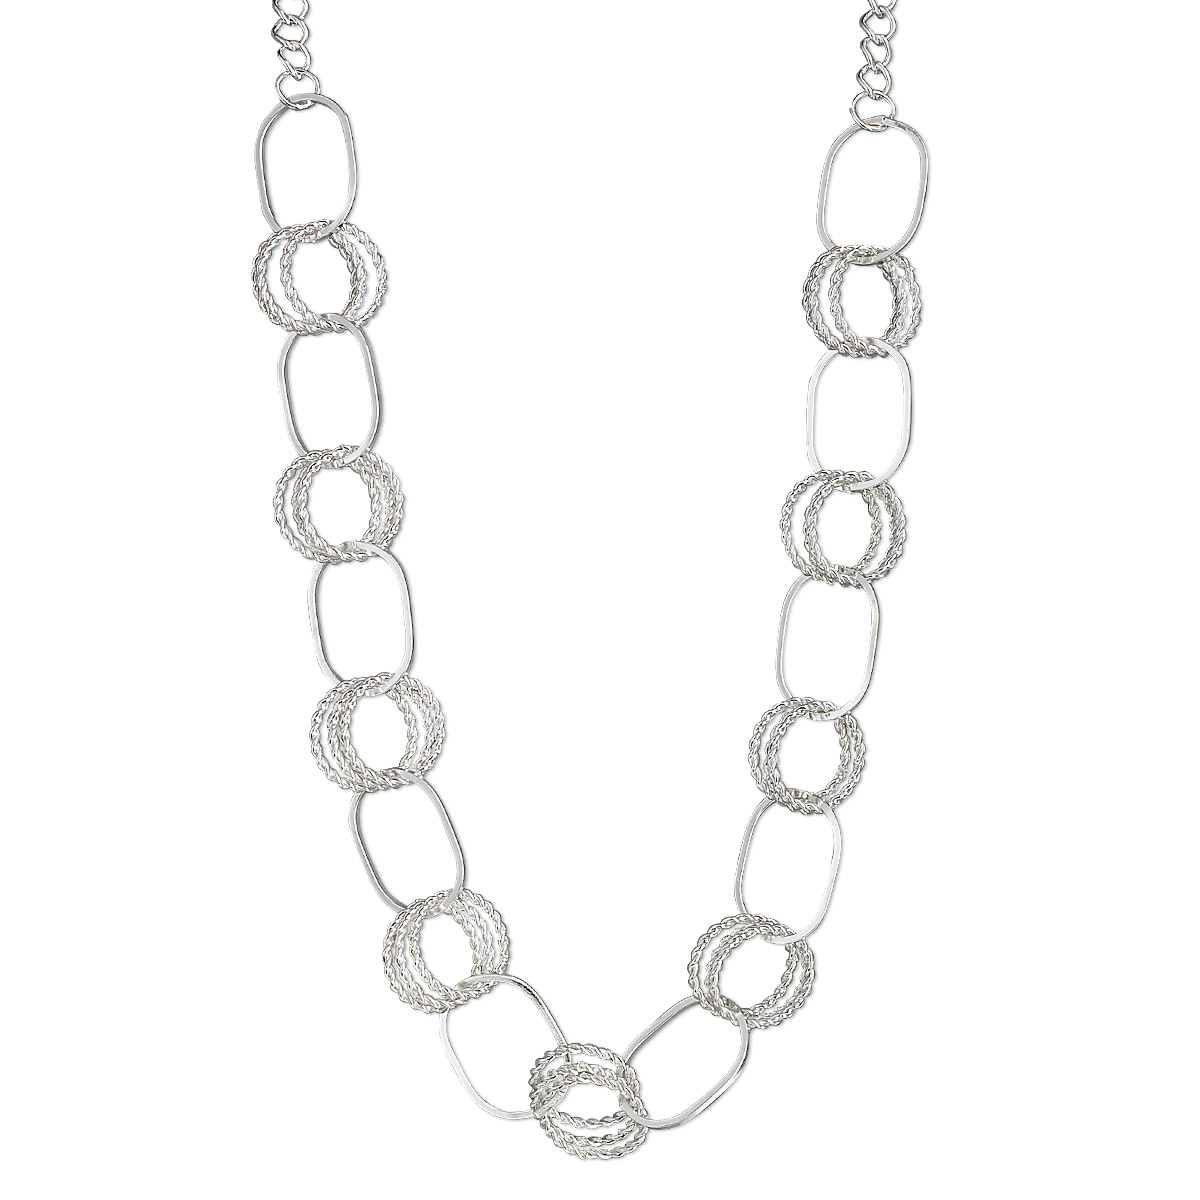 Necklace, silver-plated steel, 33x24mm oval and 24mm round, 36-inch